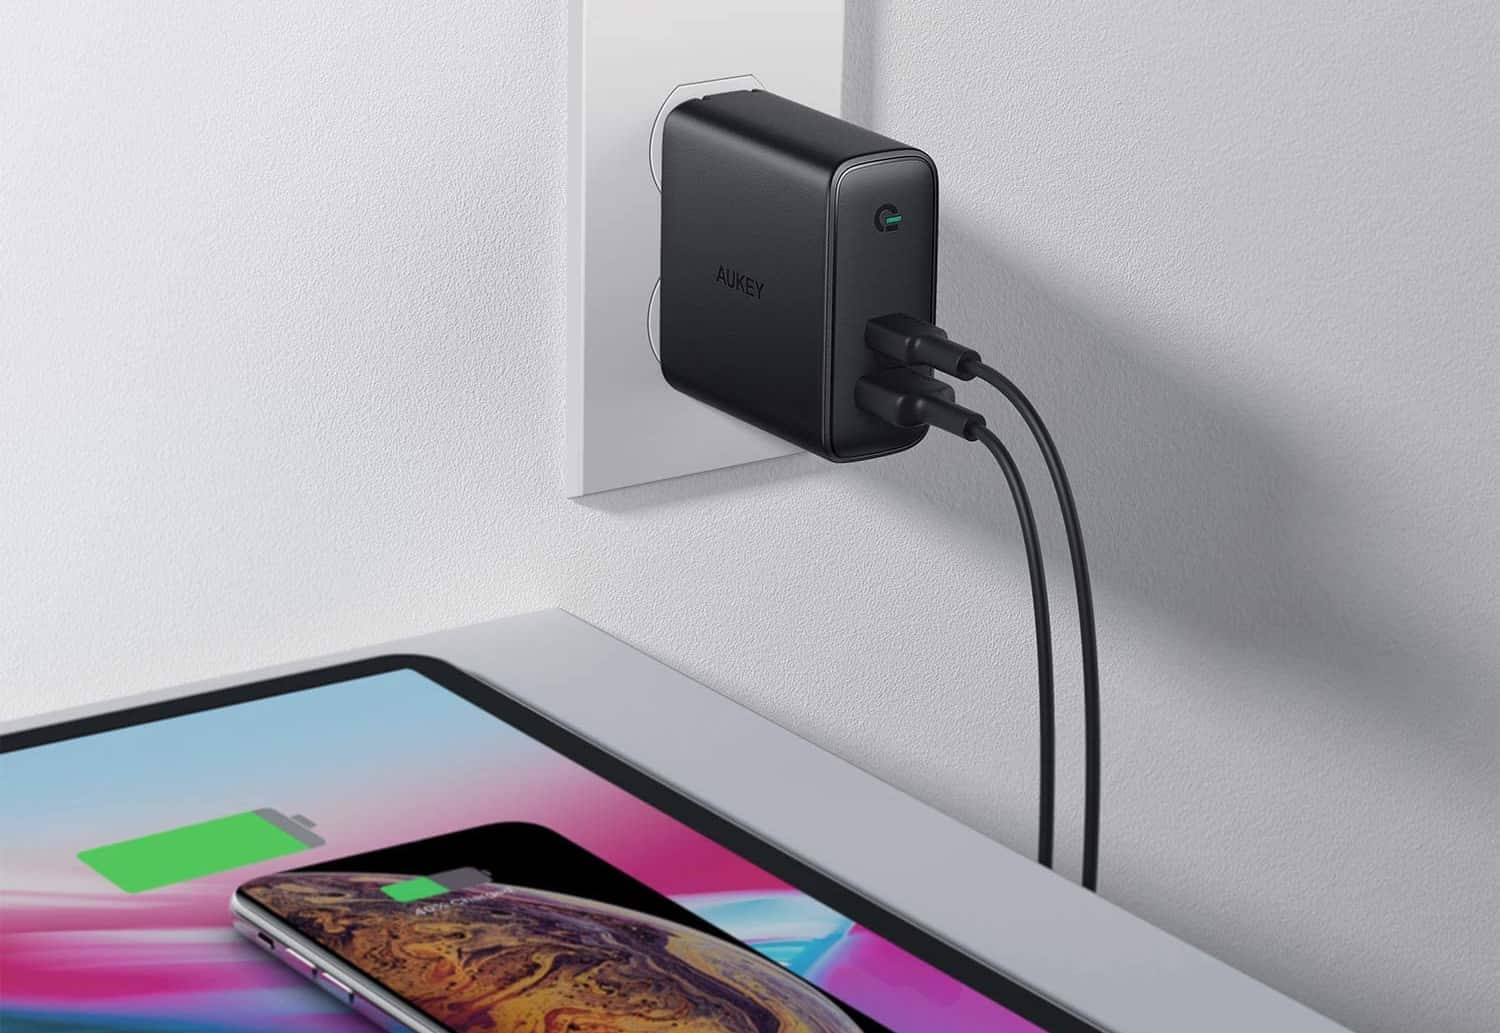 AUKEY Focus 60W PD Charger-min (1)